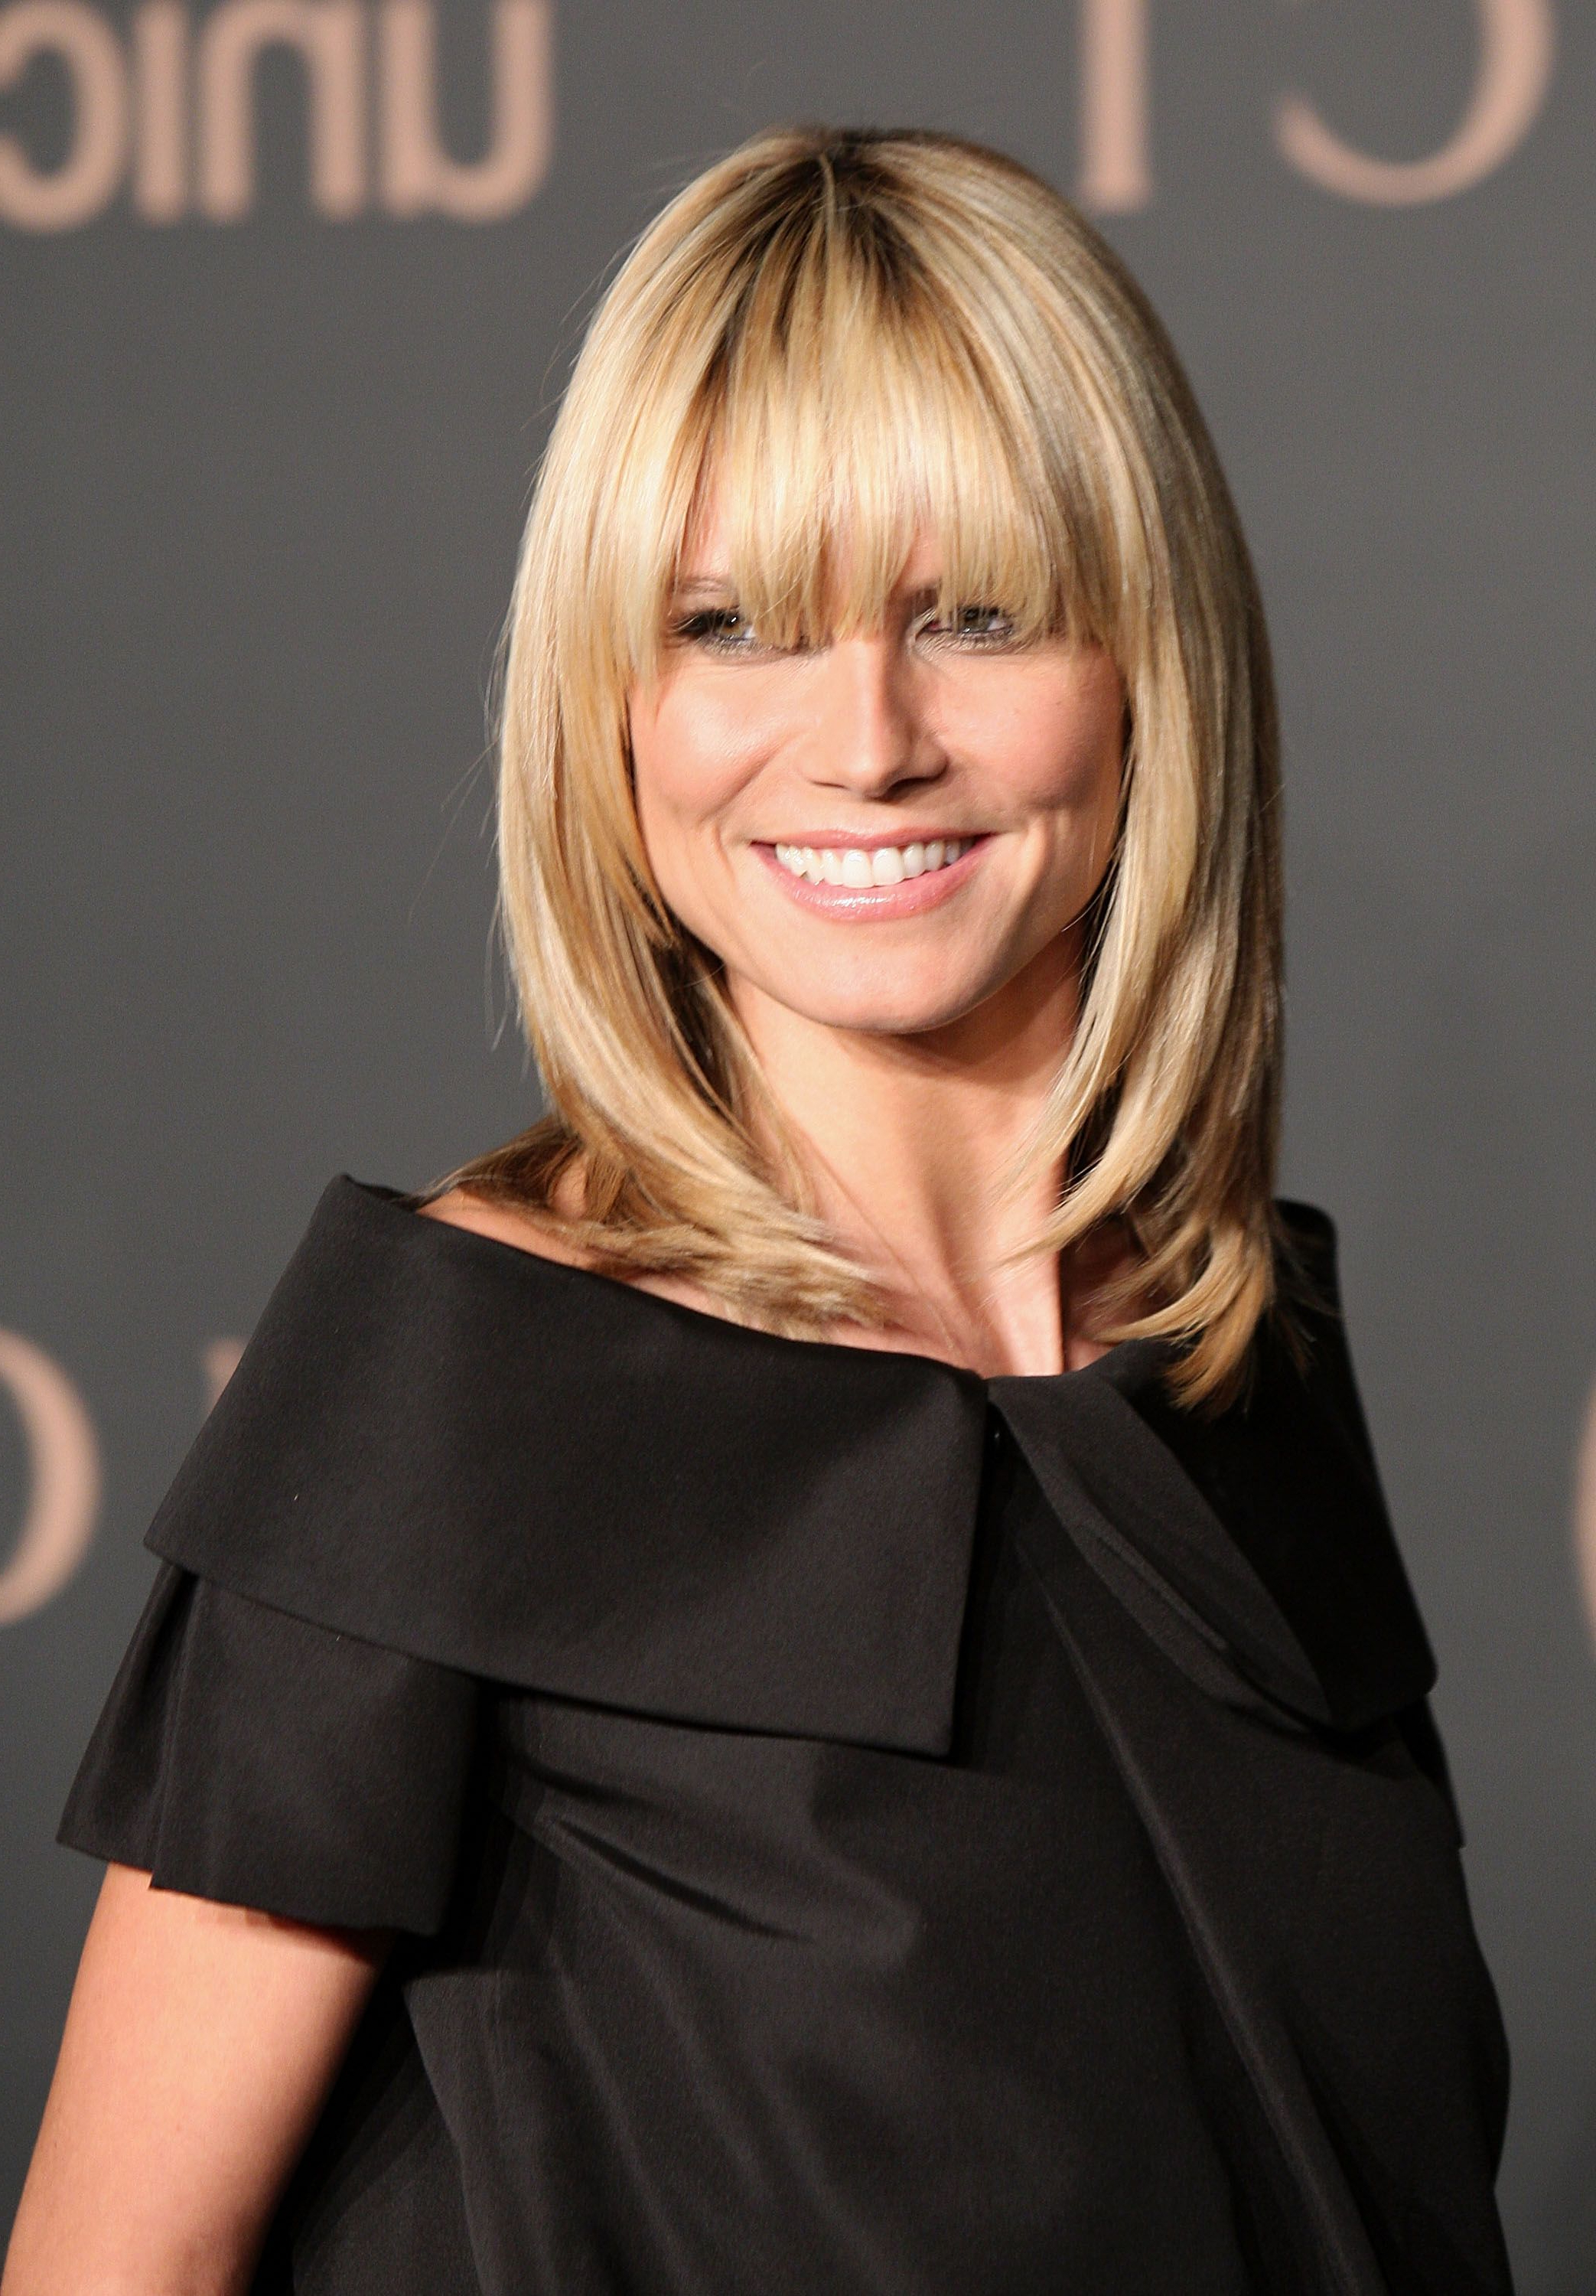 Most Current Medium Hairstyles With A Fringe In 35 Best Hairstyles With Bangs – Photos Of Celebrity Haircuts With Bangs (View 14 of 20)